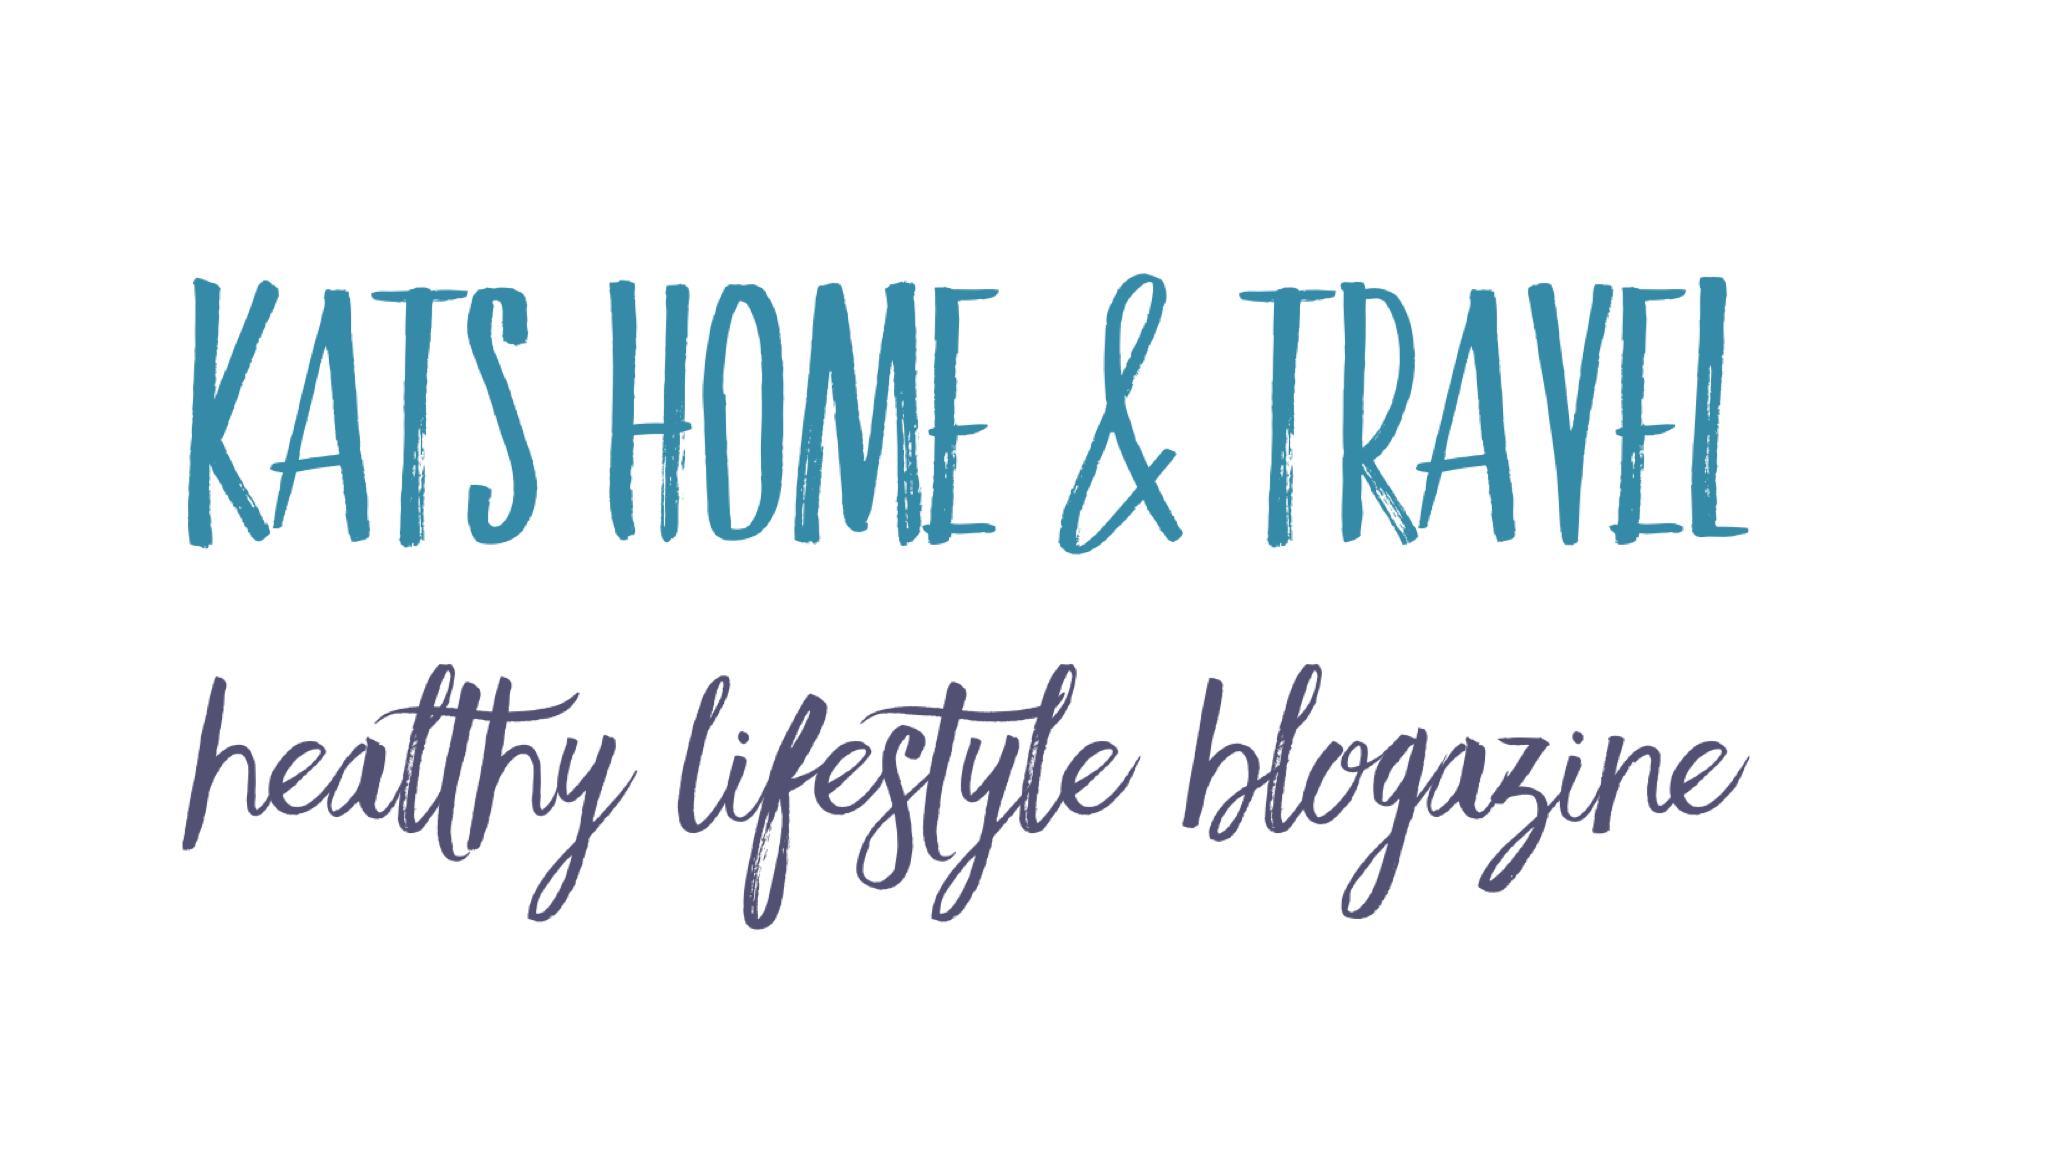 Kats Home and Travel – Cattivakat – Lifestyle Blogazine